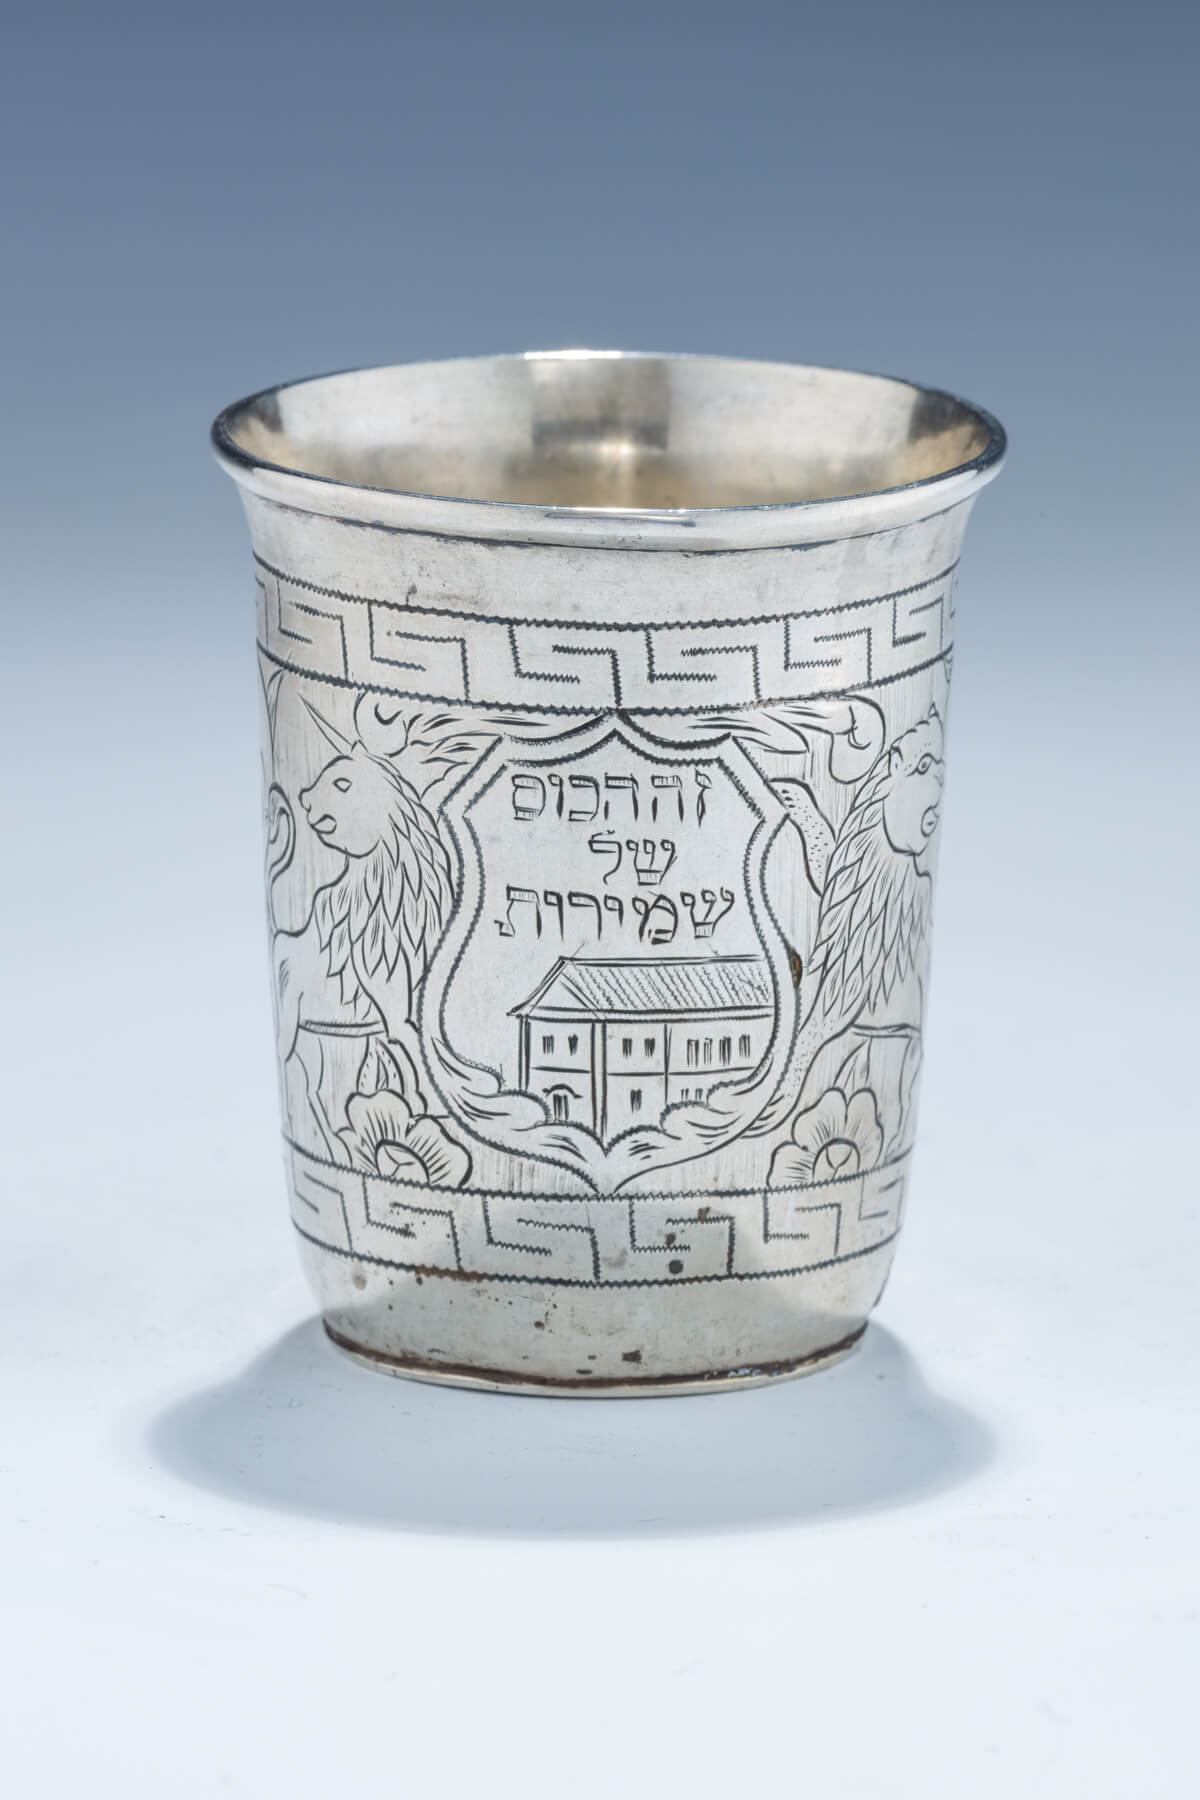 77. A Large Silver Shmirot Cup